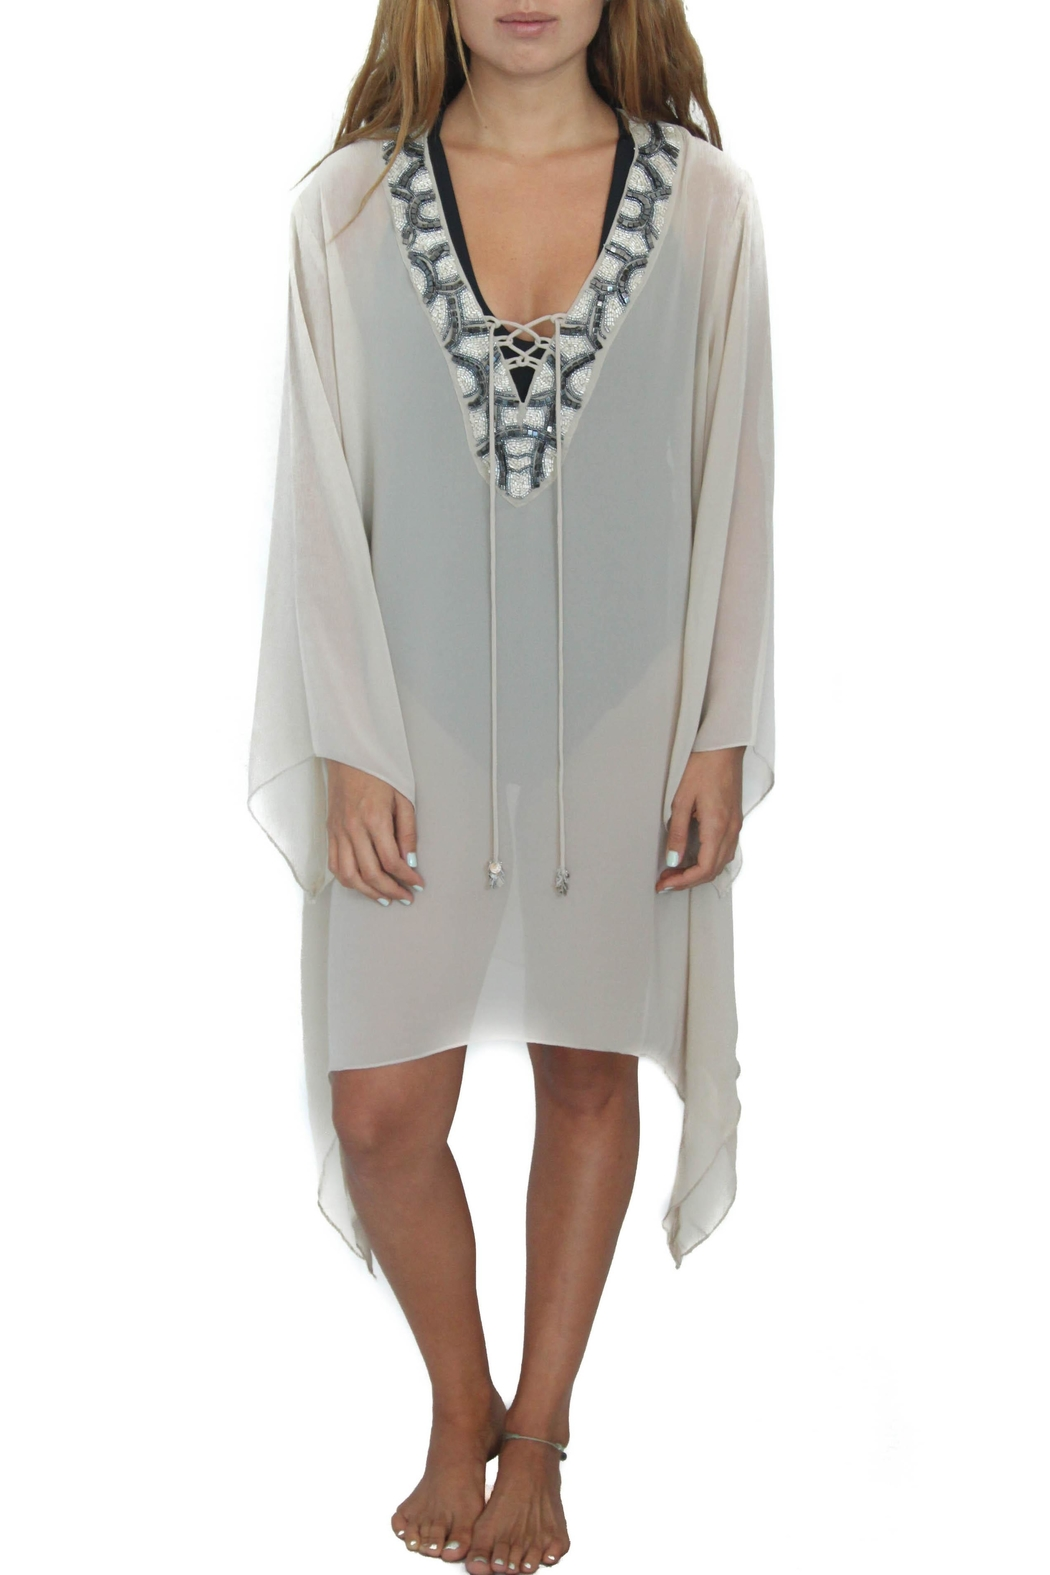 Eclectic Array Beaded Sand Tunic Dress - Main Image